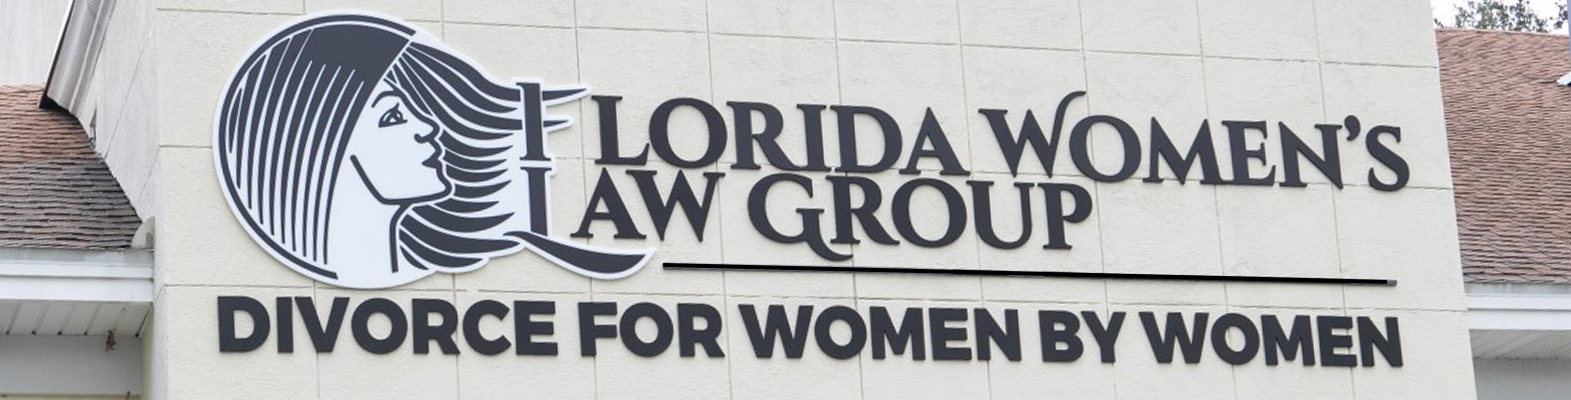 outside sign of the Florida Women's Law Group building